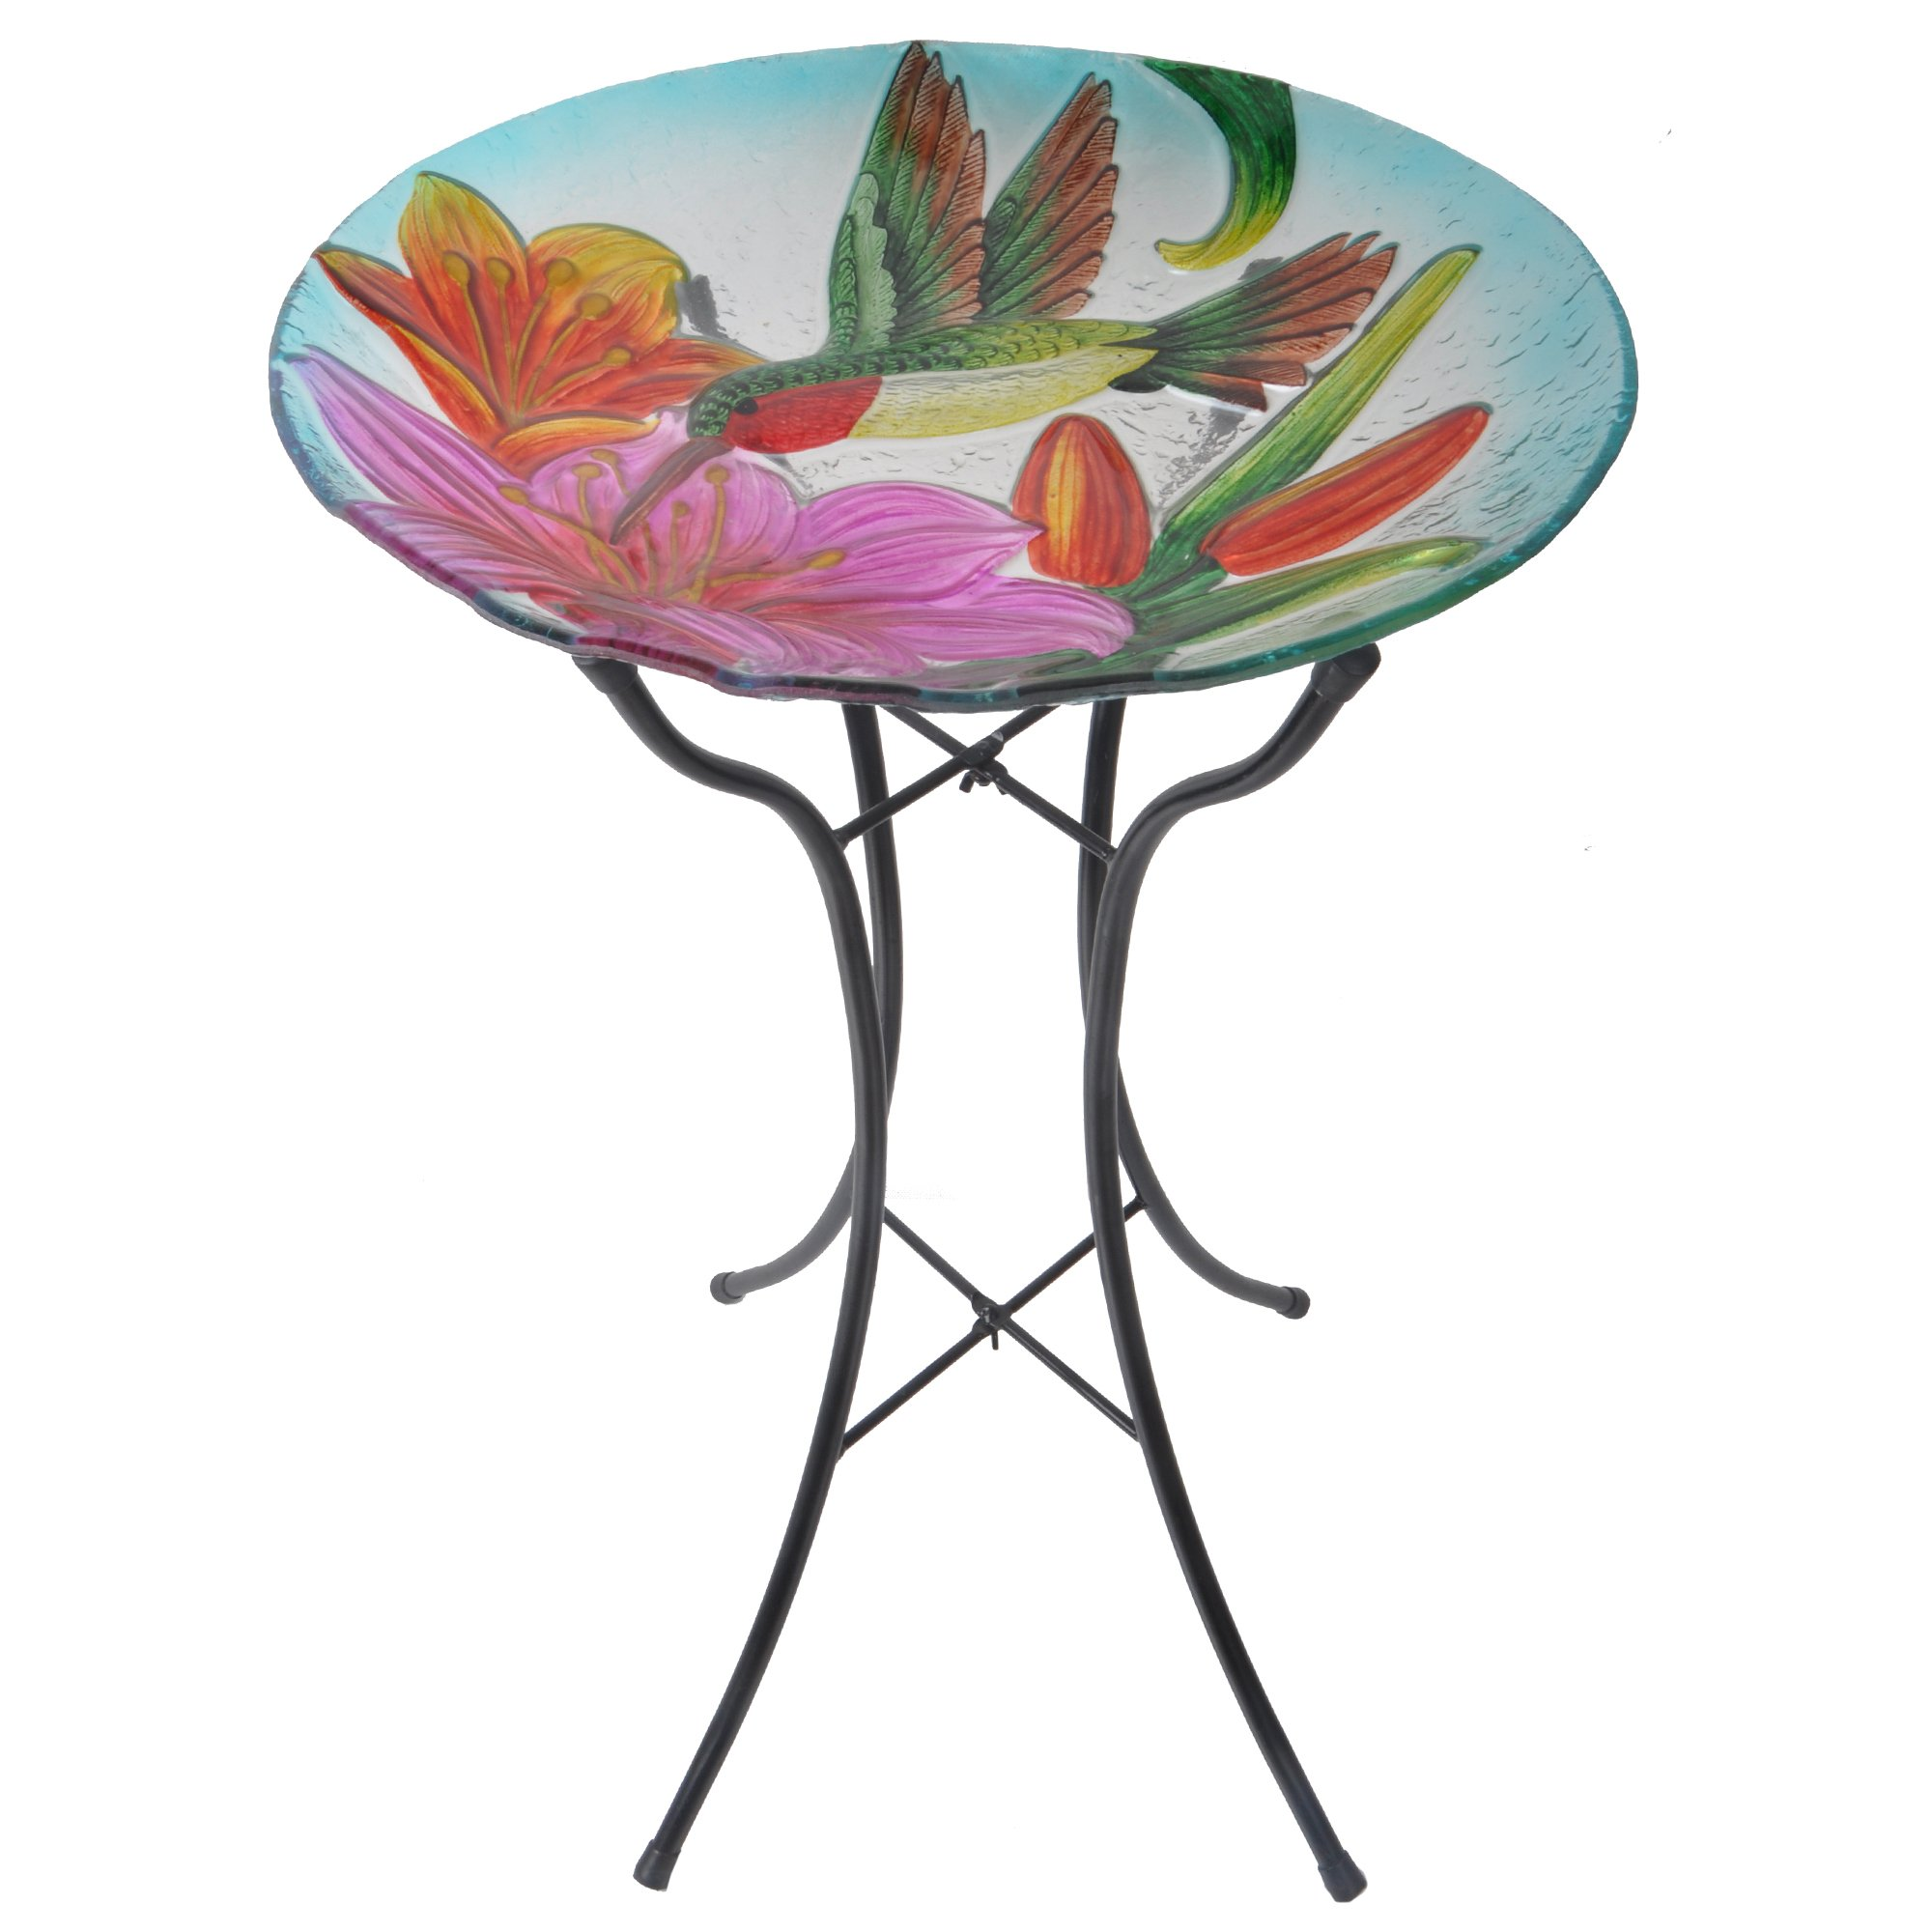 Peaktop - Outdoor 18-inch Hummingbird Fusion Glass Bird Bath w/Metal Stand - Pink and Green